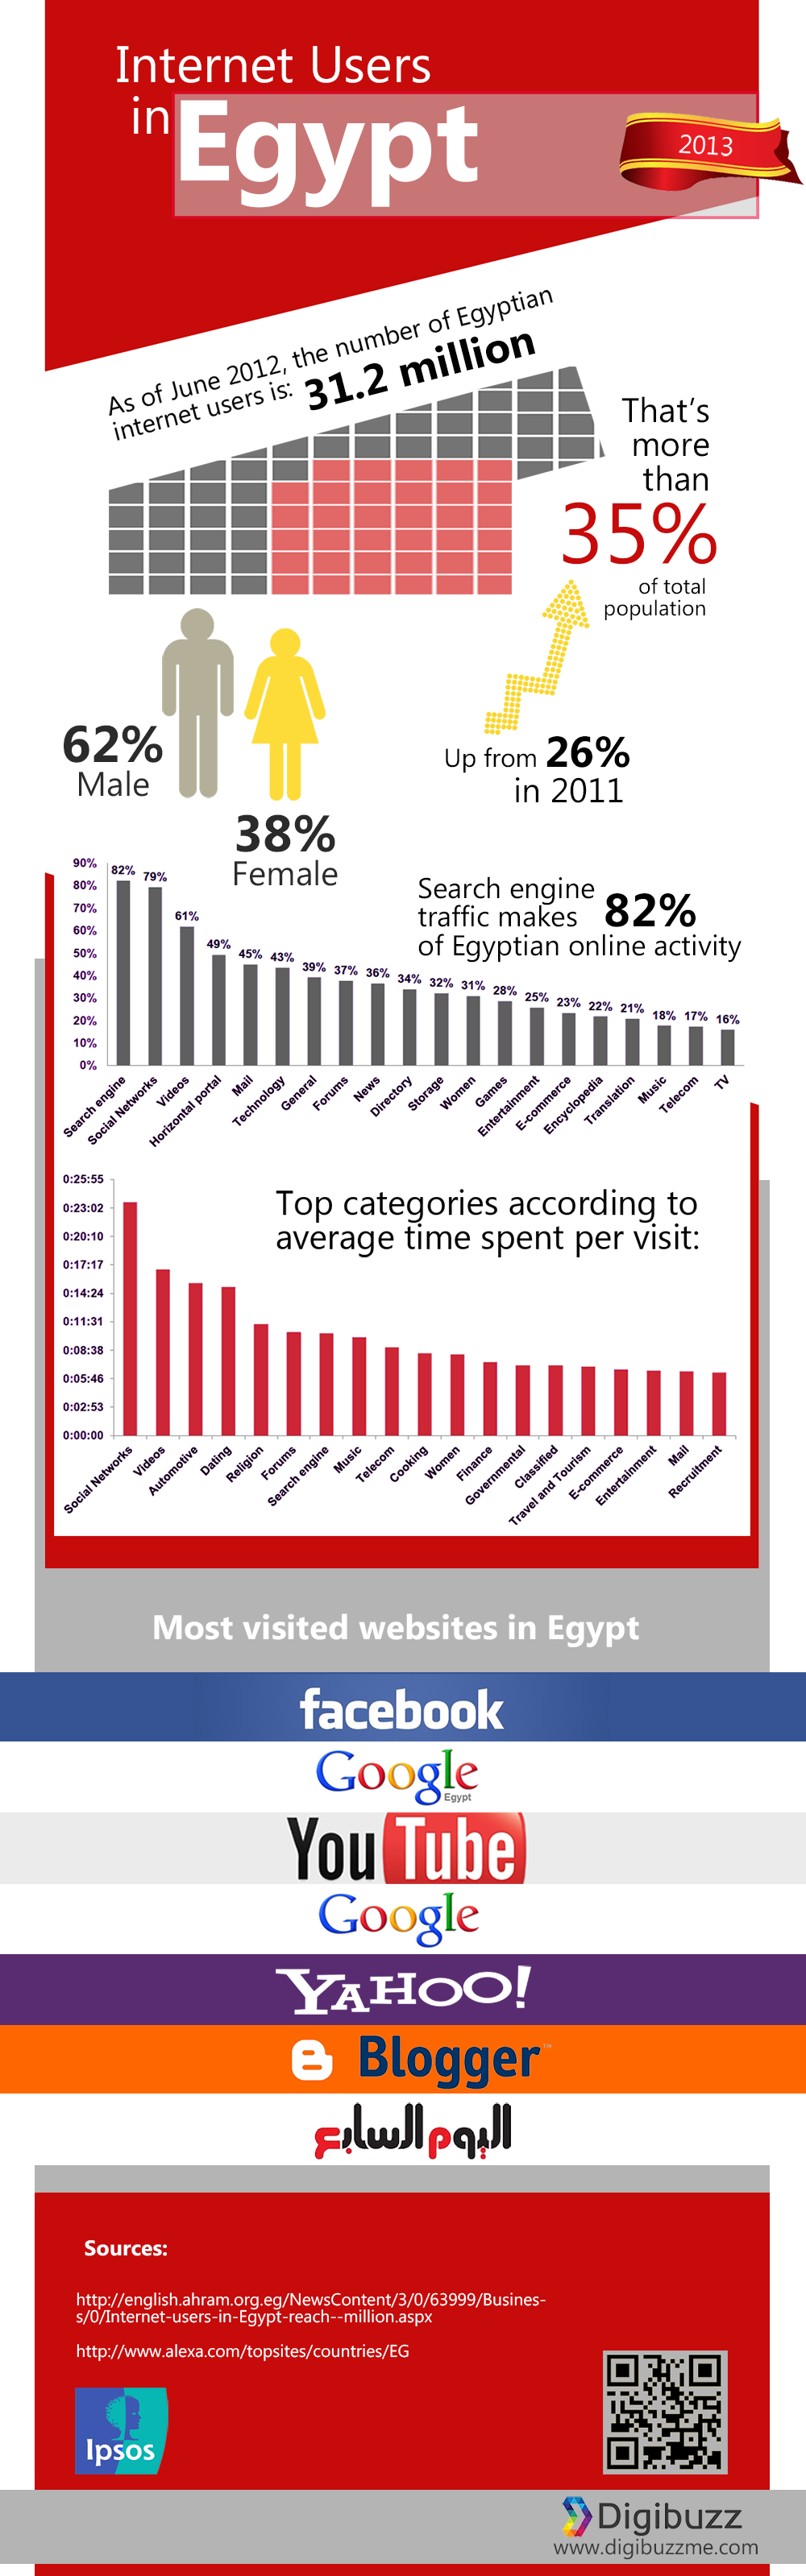 Internet users in Egypt